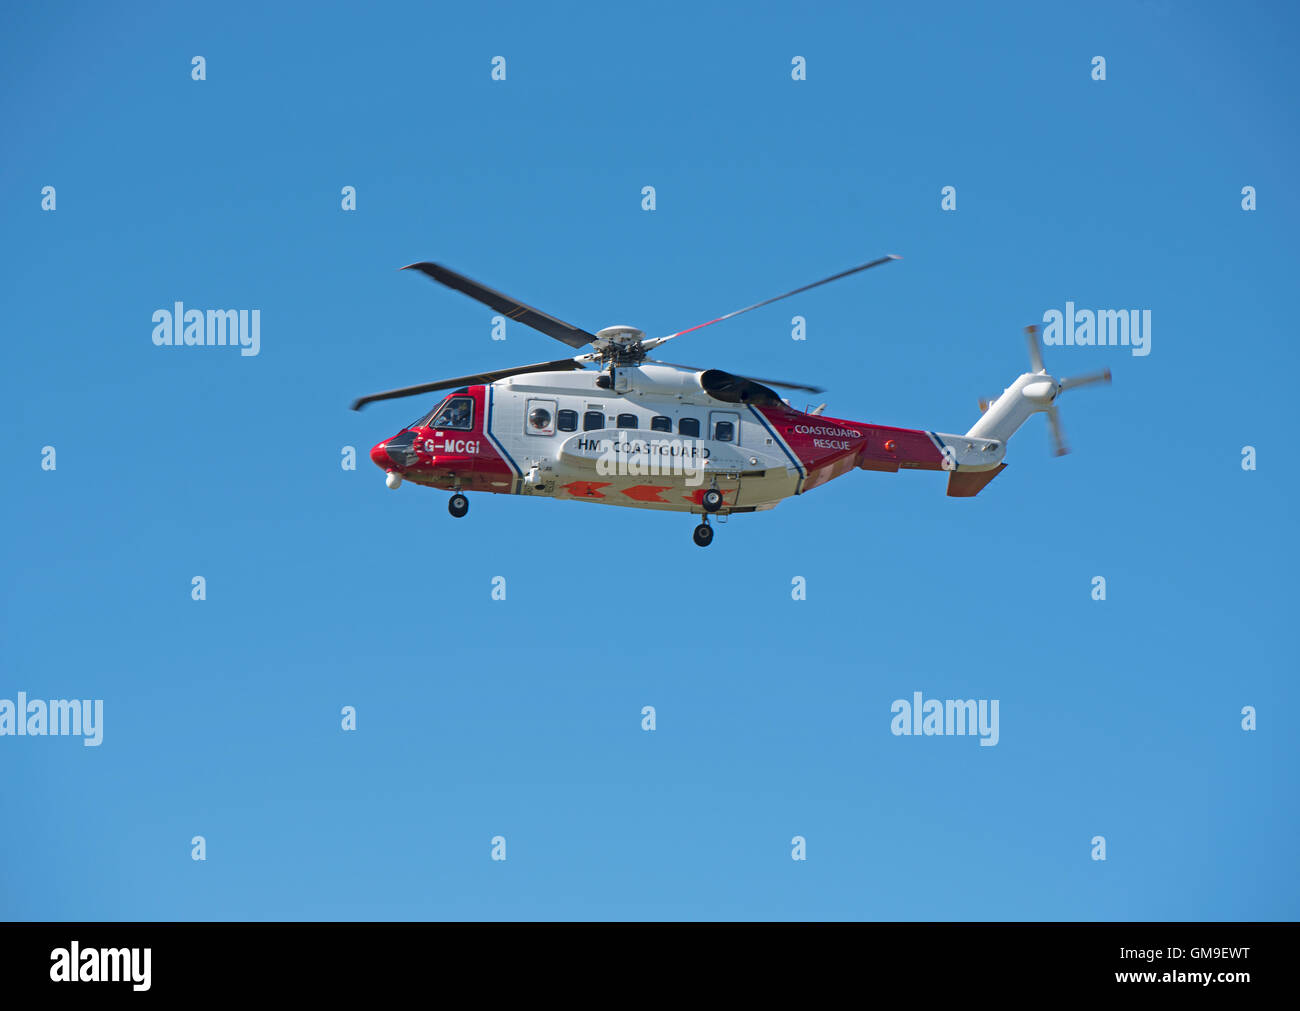 Sikorsky S-92A Coastguard SAR Helicopter (G-MCGI) based at Inverness. SCO 11,187. - Stock Image